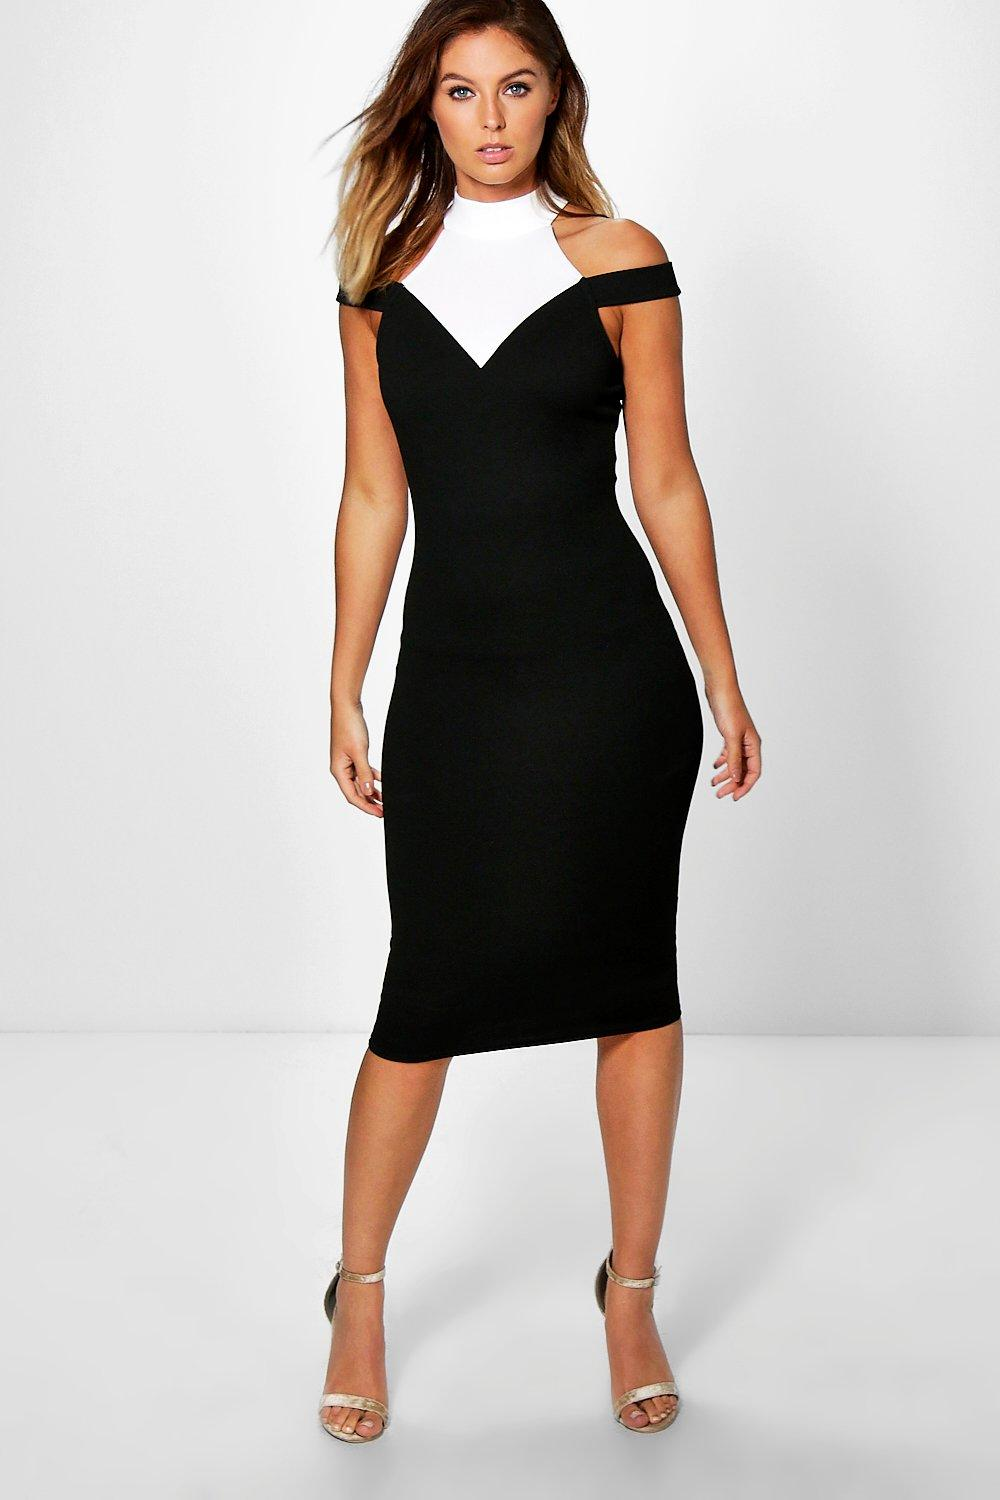 Rachel Contrast Open Shoulder Midi Dress